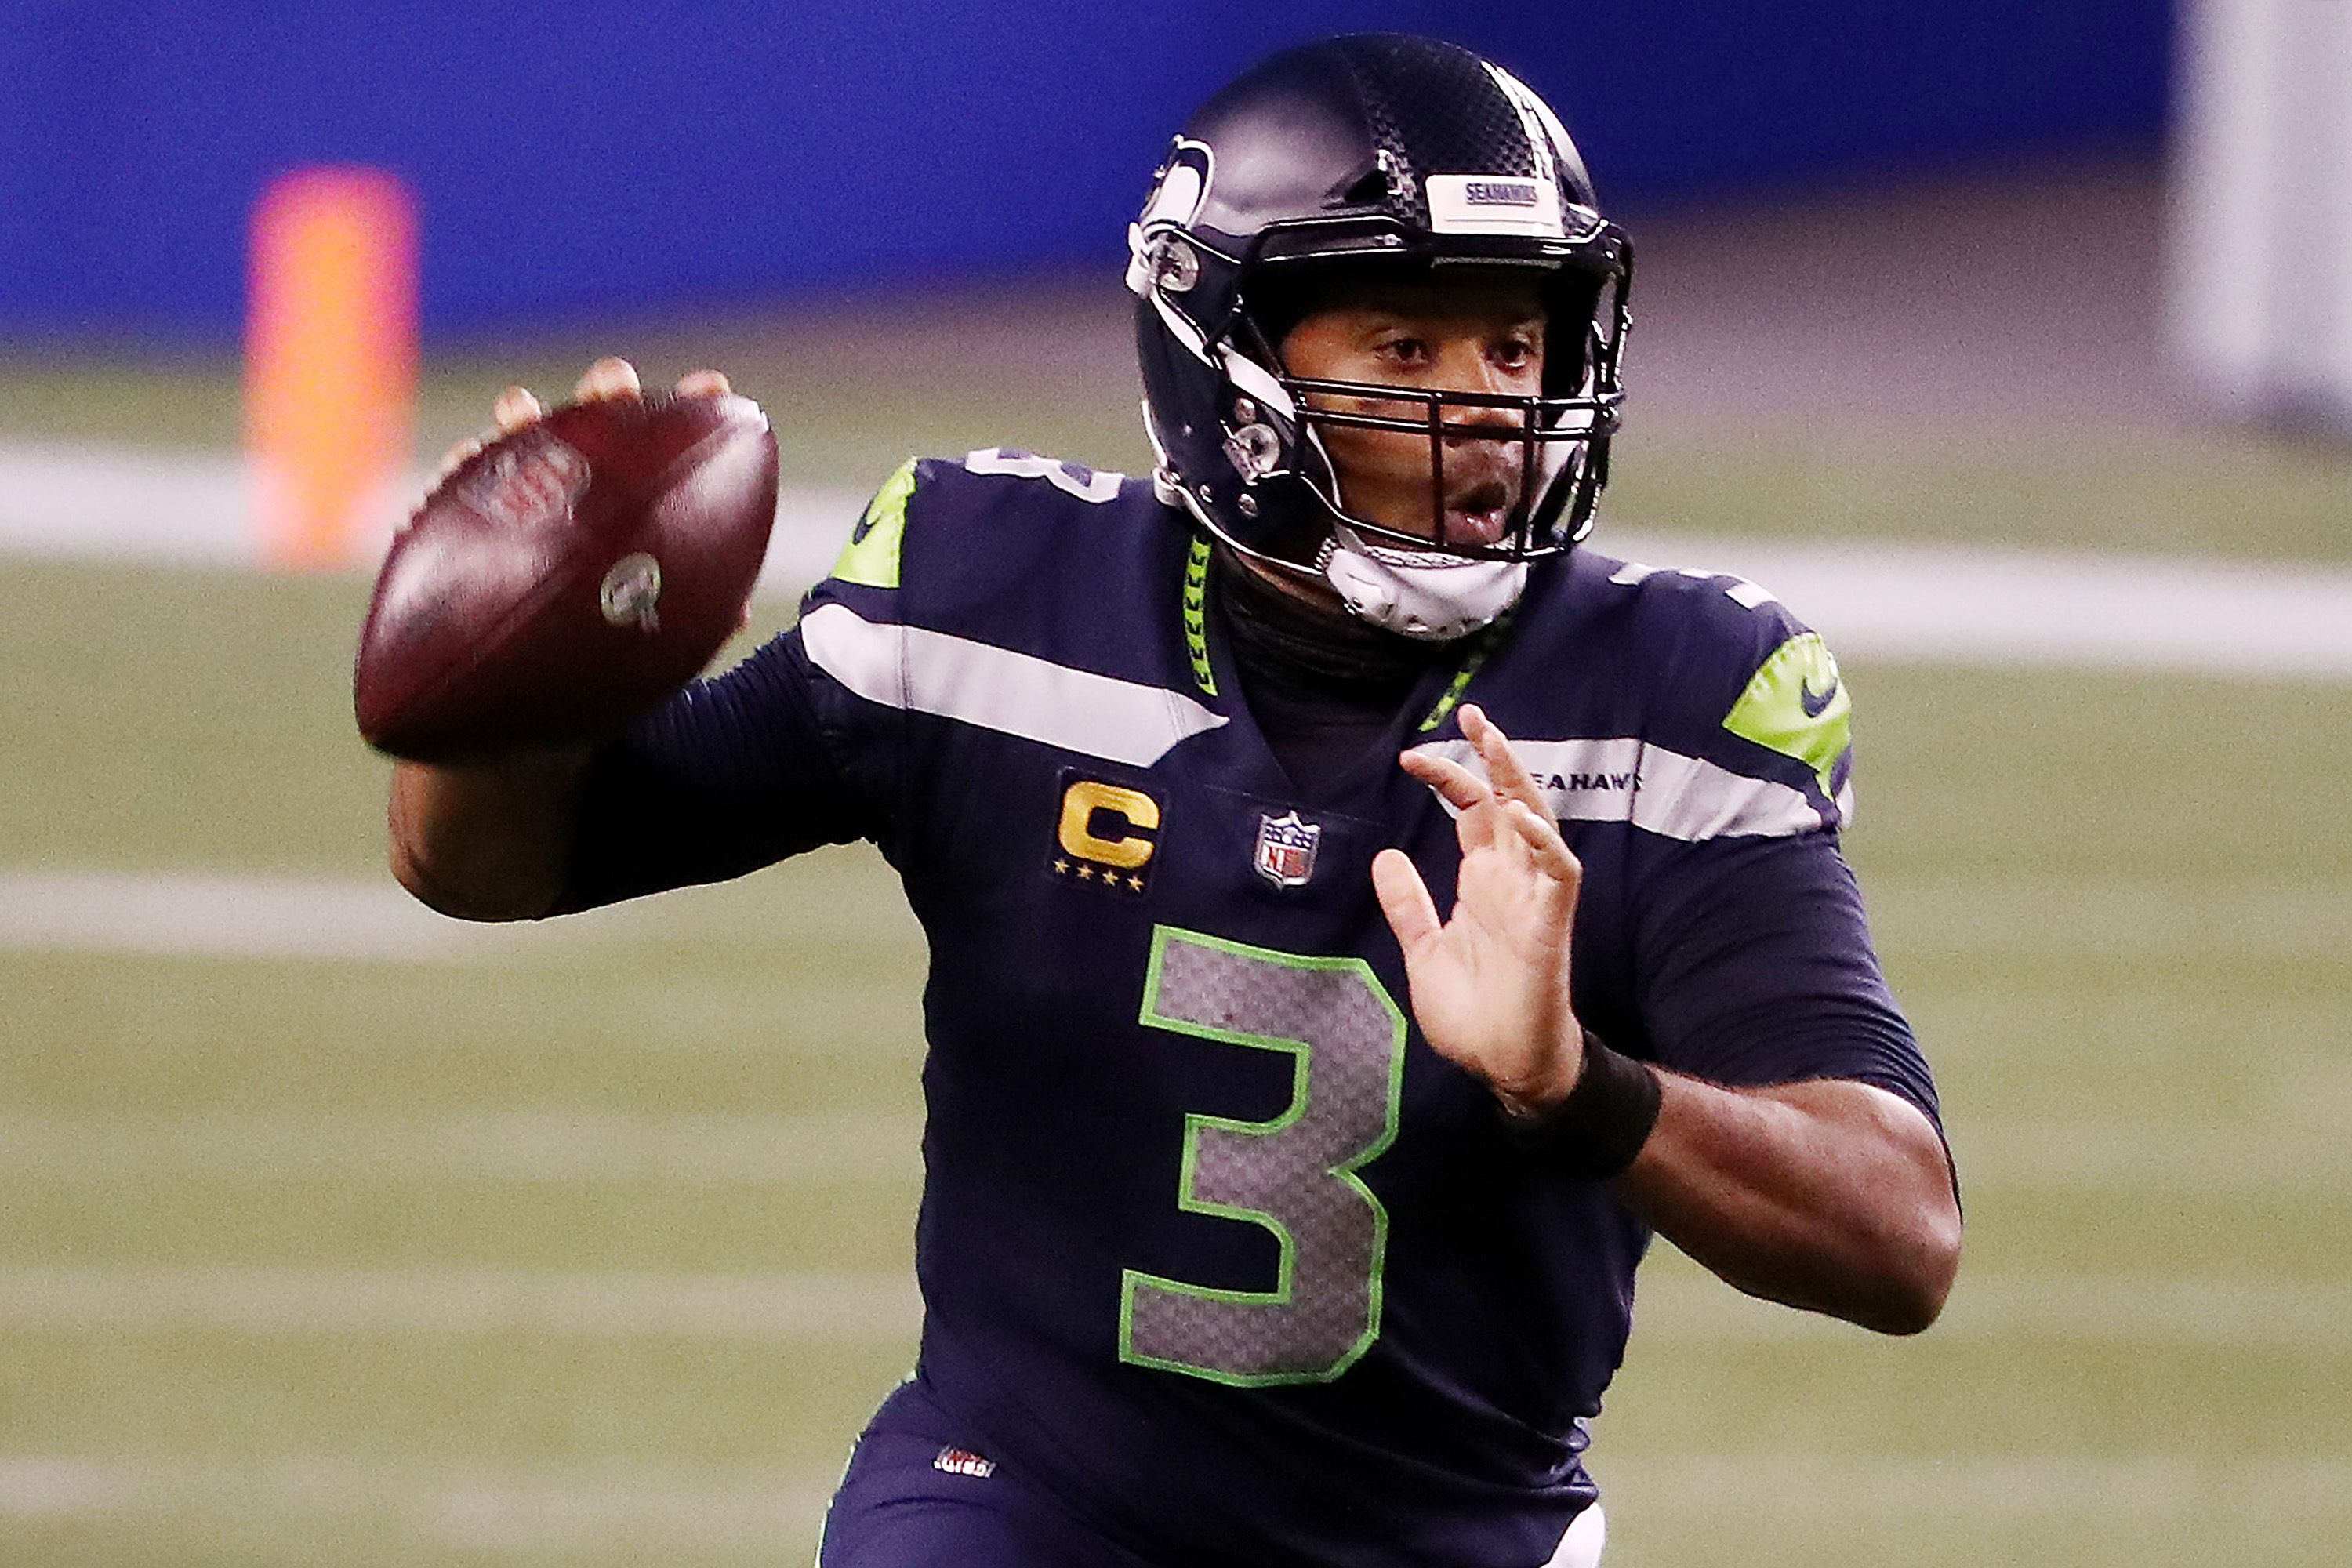 Russell Wilson passing the ball